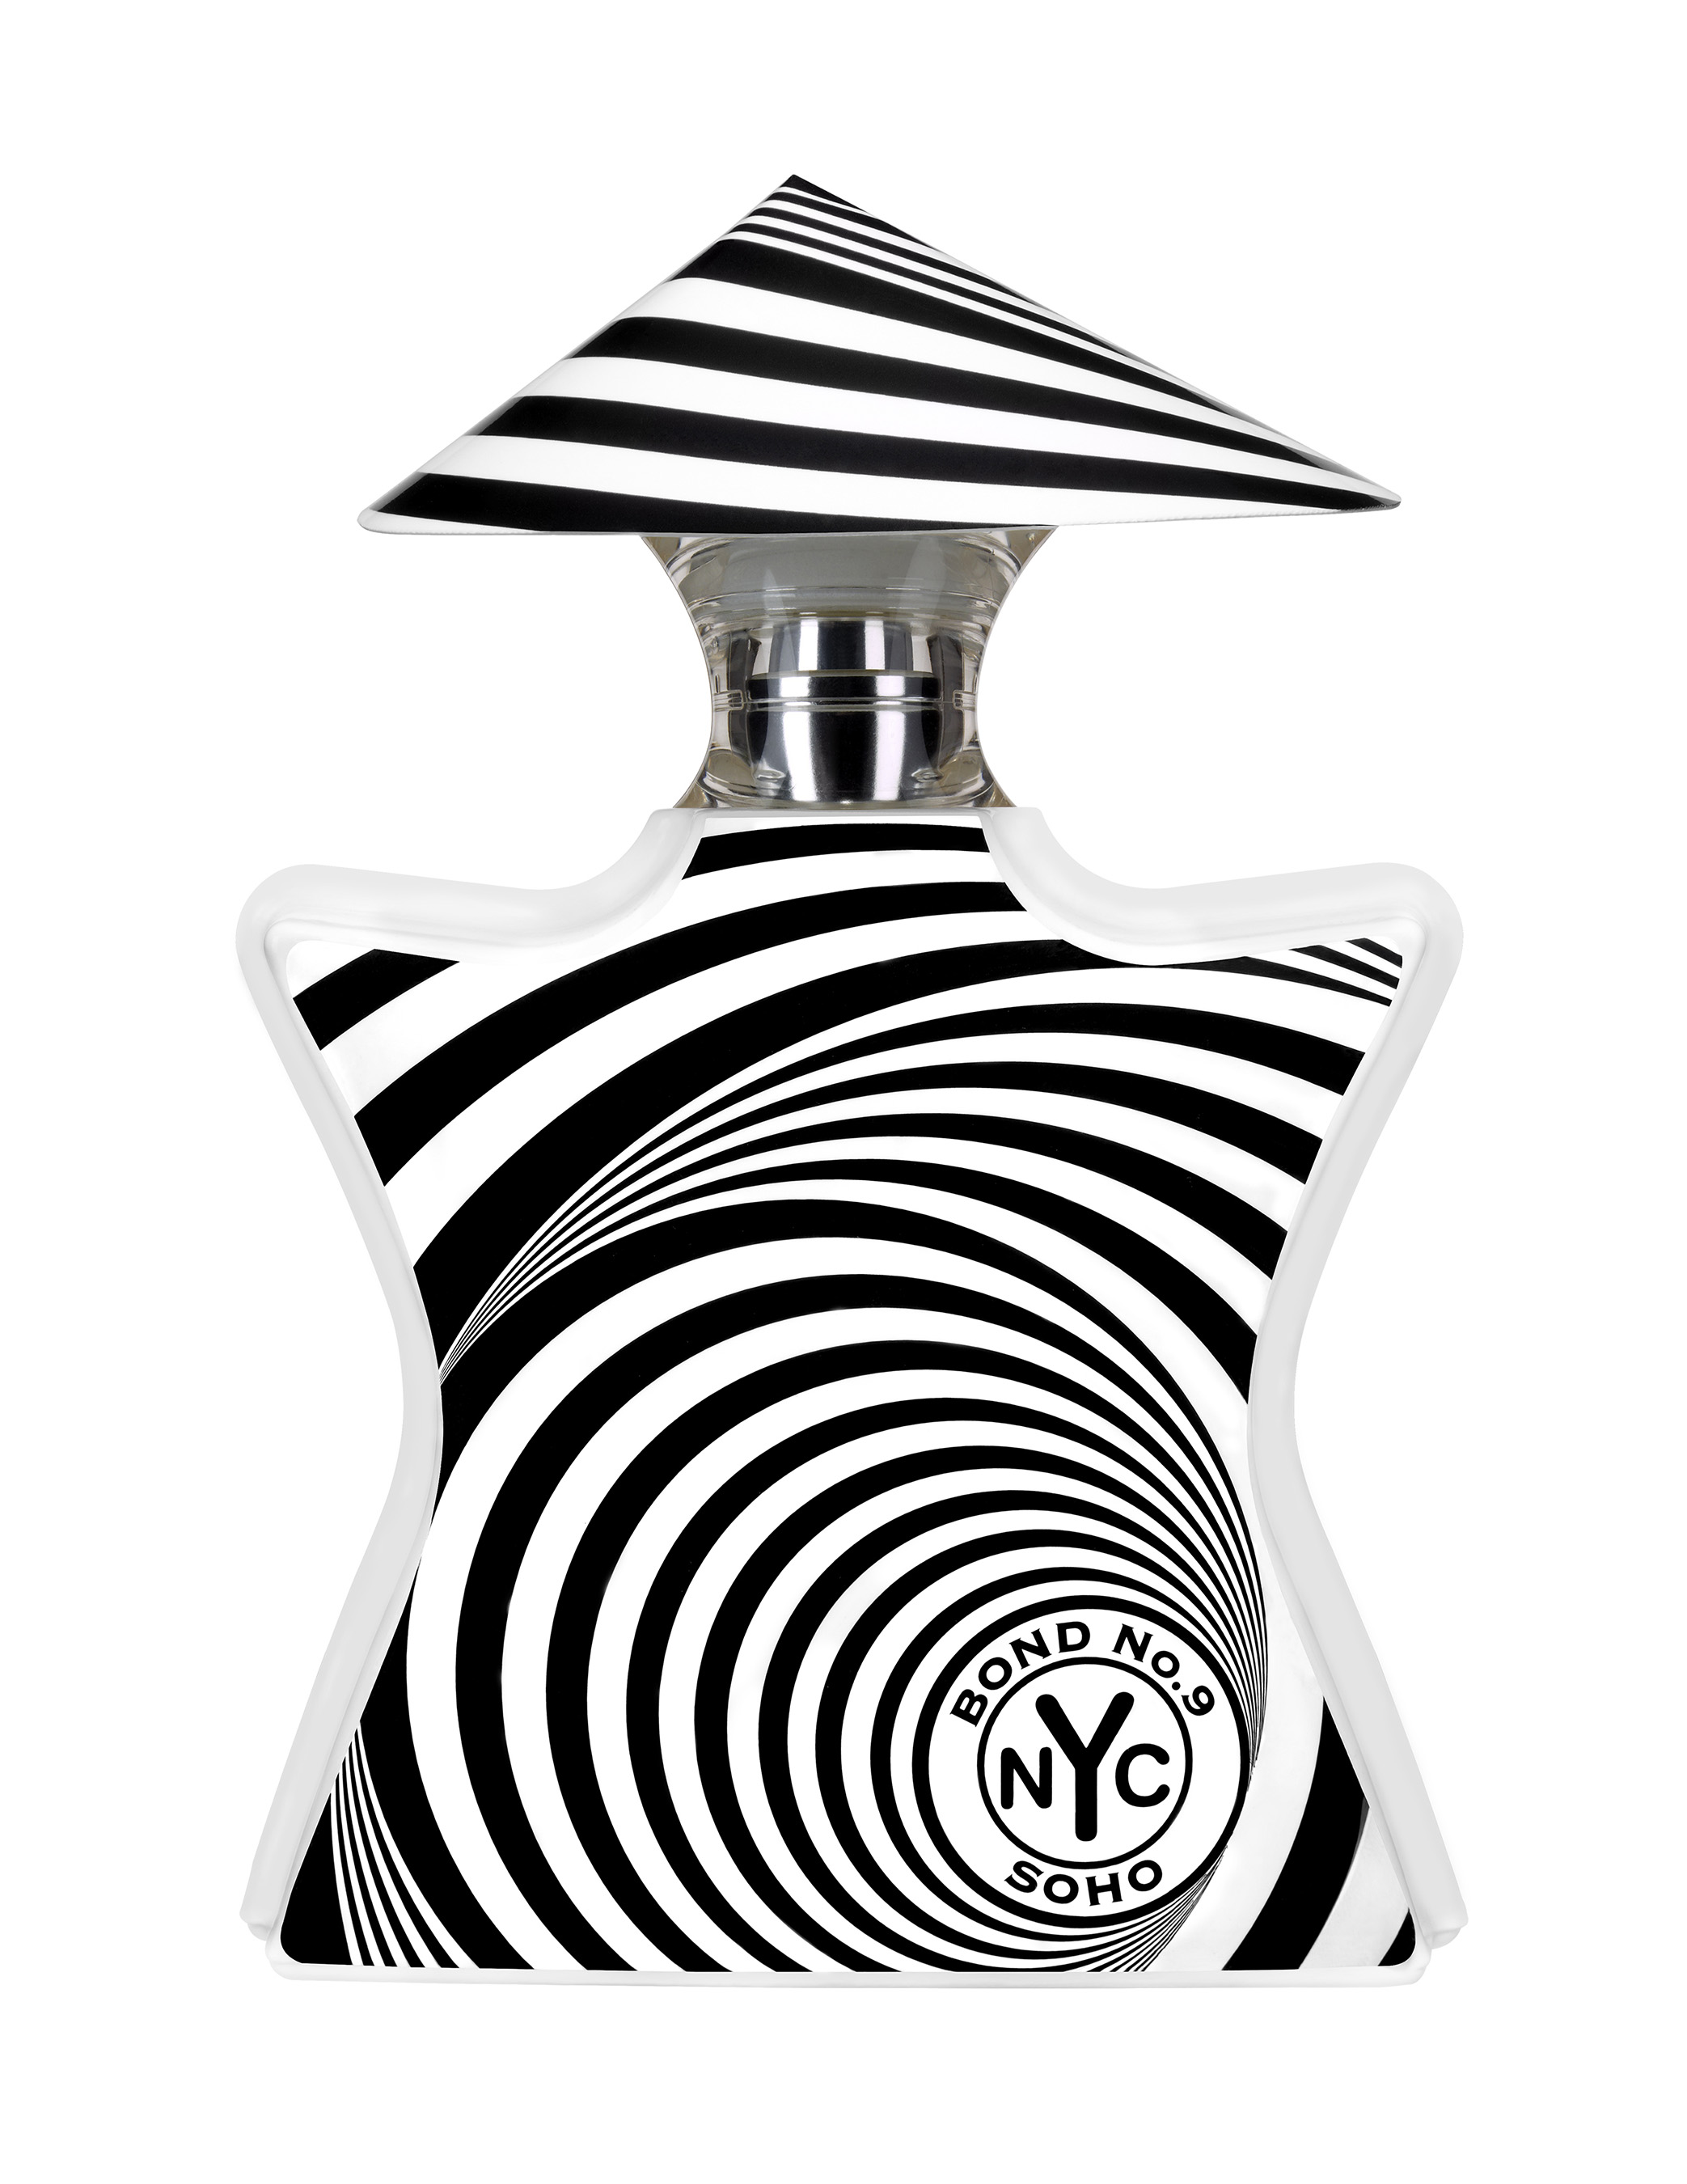 Soho bottle's mesmerizing black and white whirlpool swirls are a high-energy visualization of the scent inside.